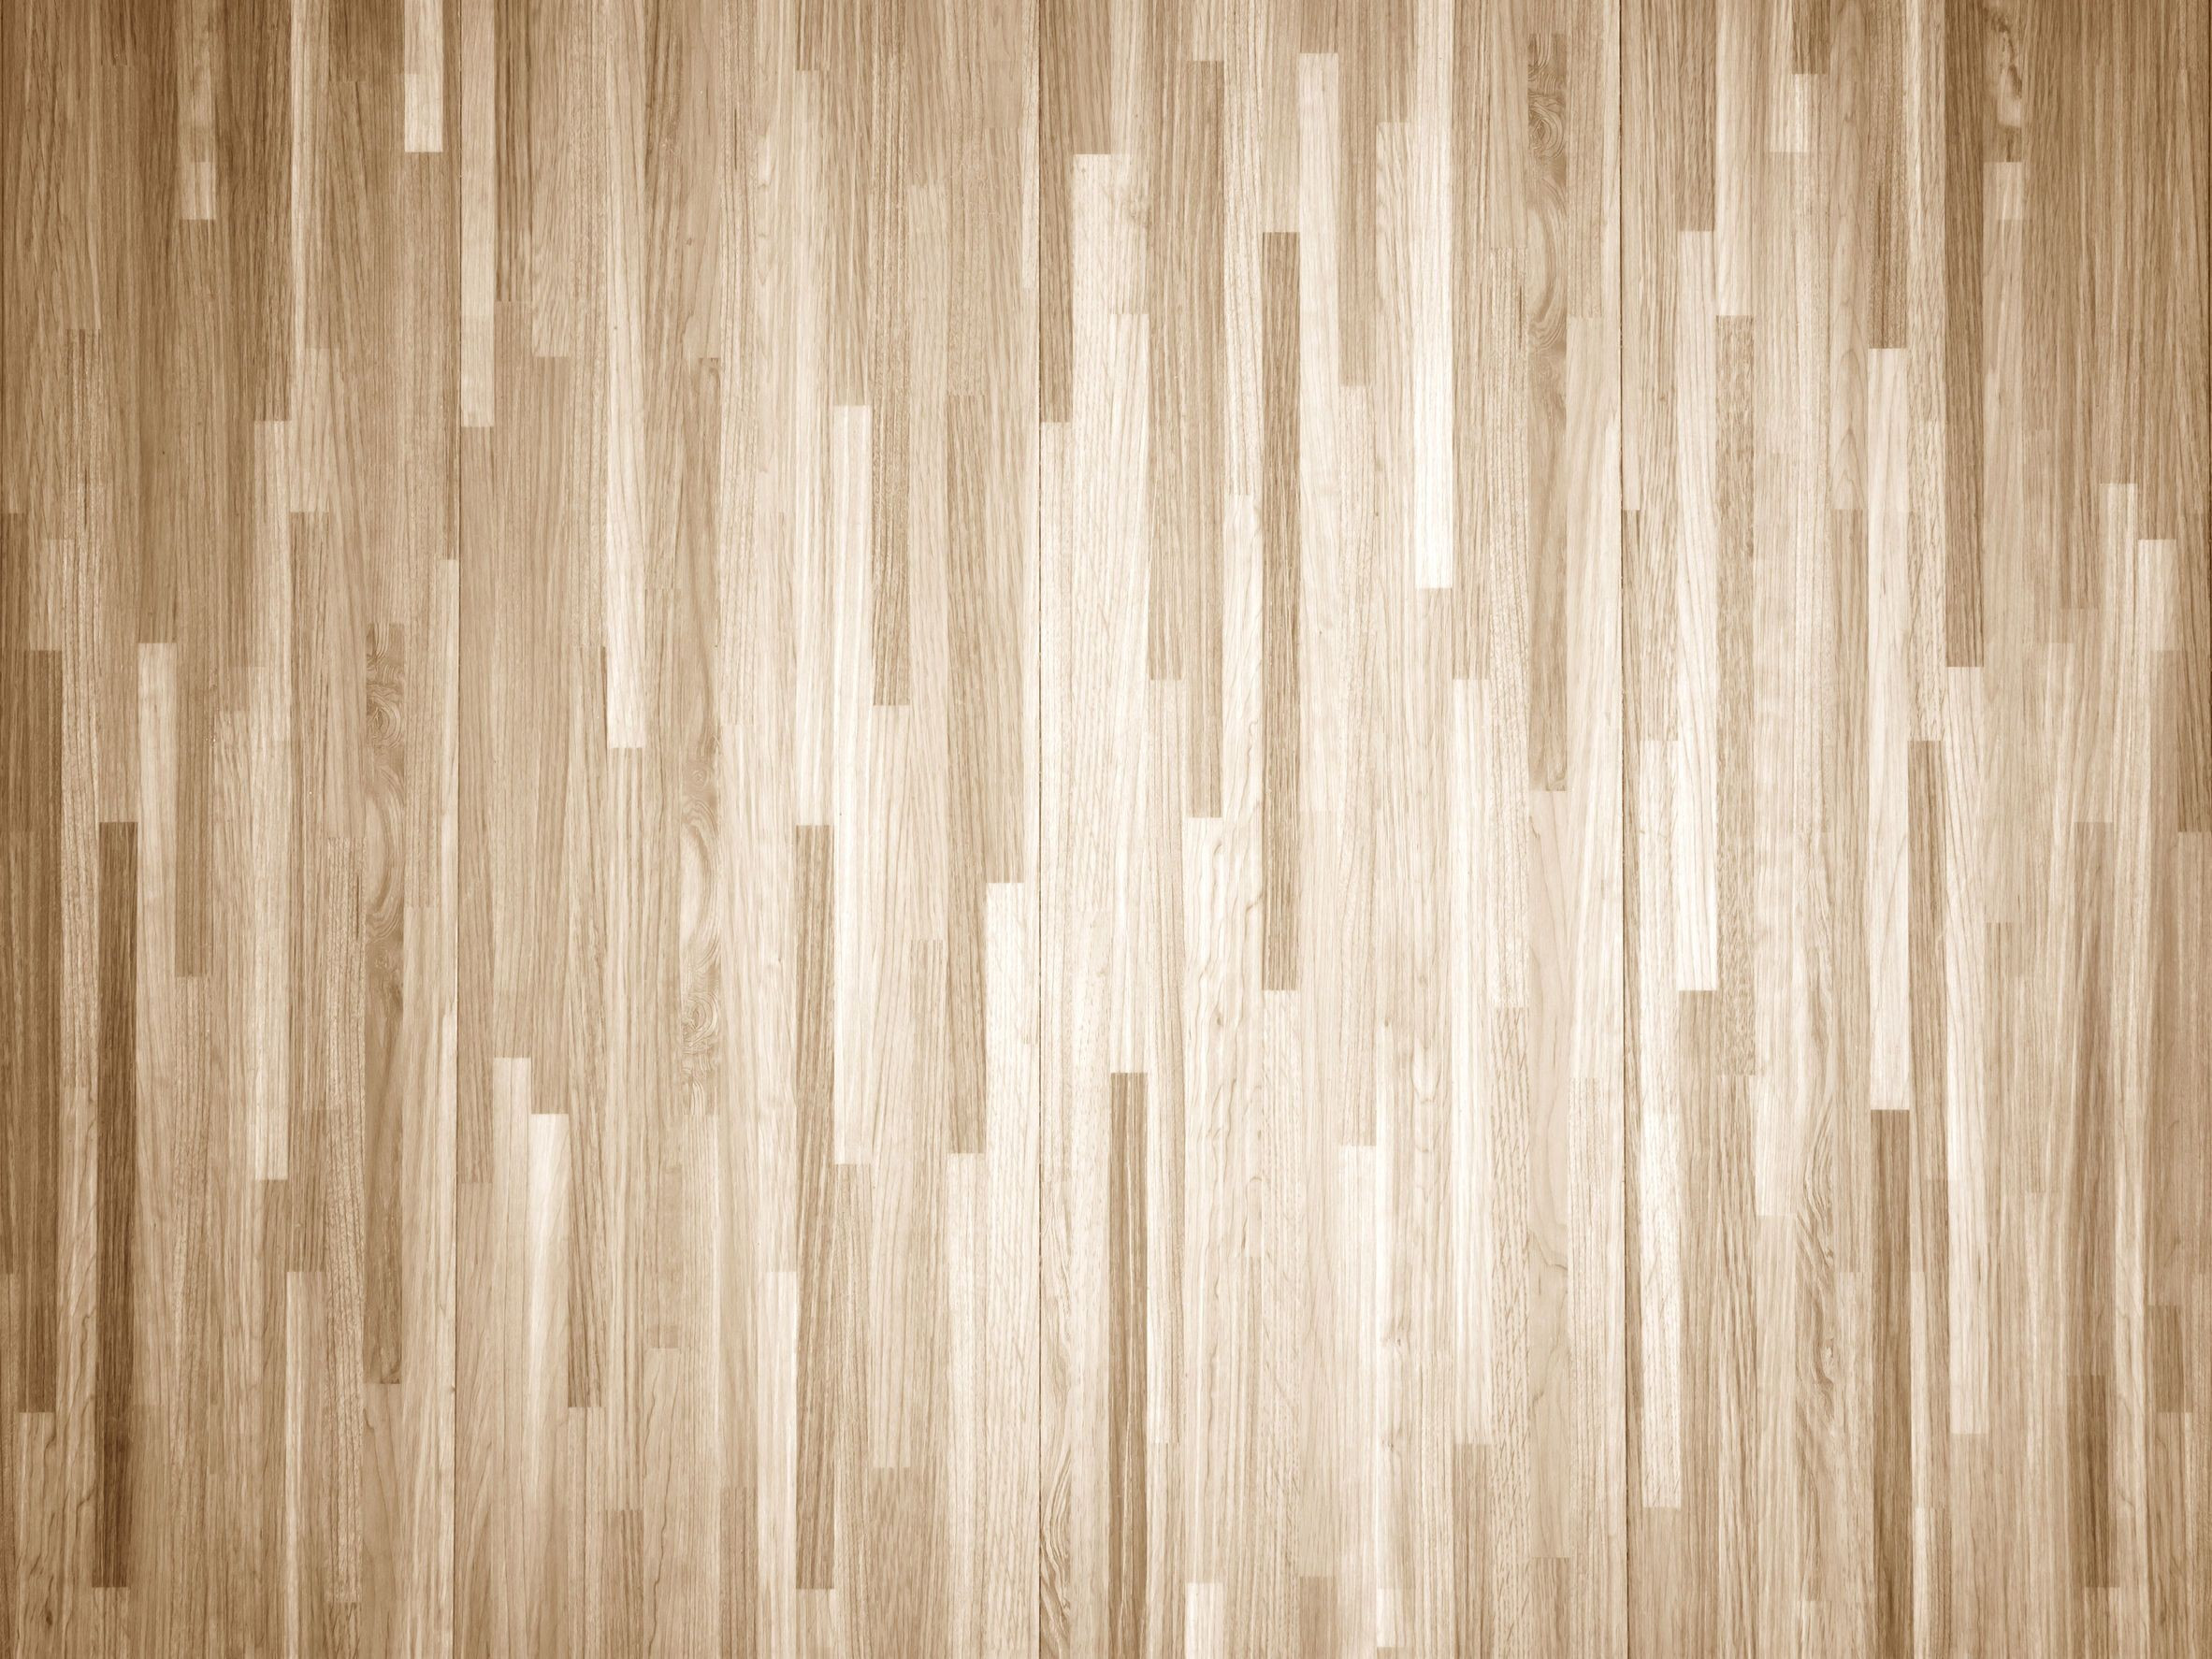 hardwood floor repair charlotte nc of 19 awesome how to restore hardwood floors pictures dizpos com inside how to chemically strip wood floors woodfloordoctor